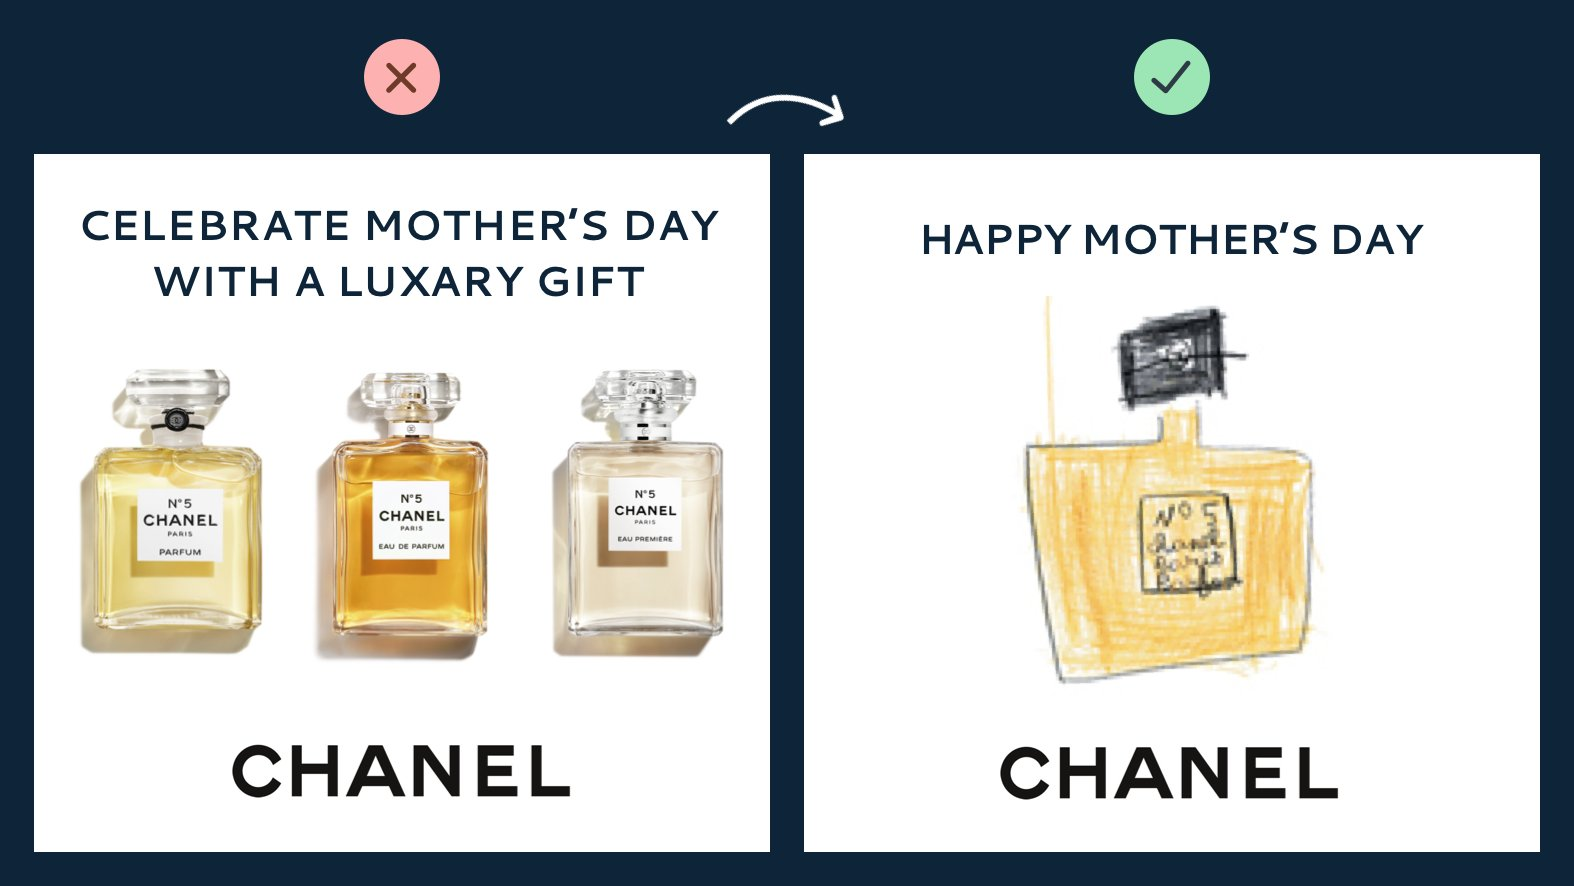 Photo: On the left side, there's a Mother's Day-inspired Chanel ad with professional photography. On the right side, there's a Mother's Day-inspired Chanel ad that seems to have been handdrawn by a child.